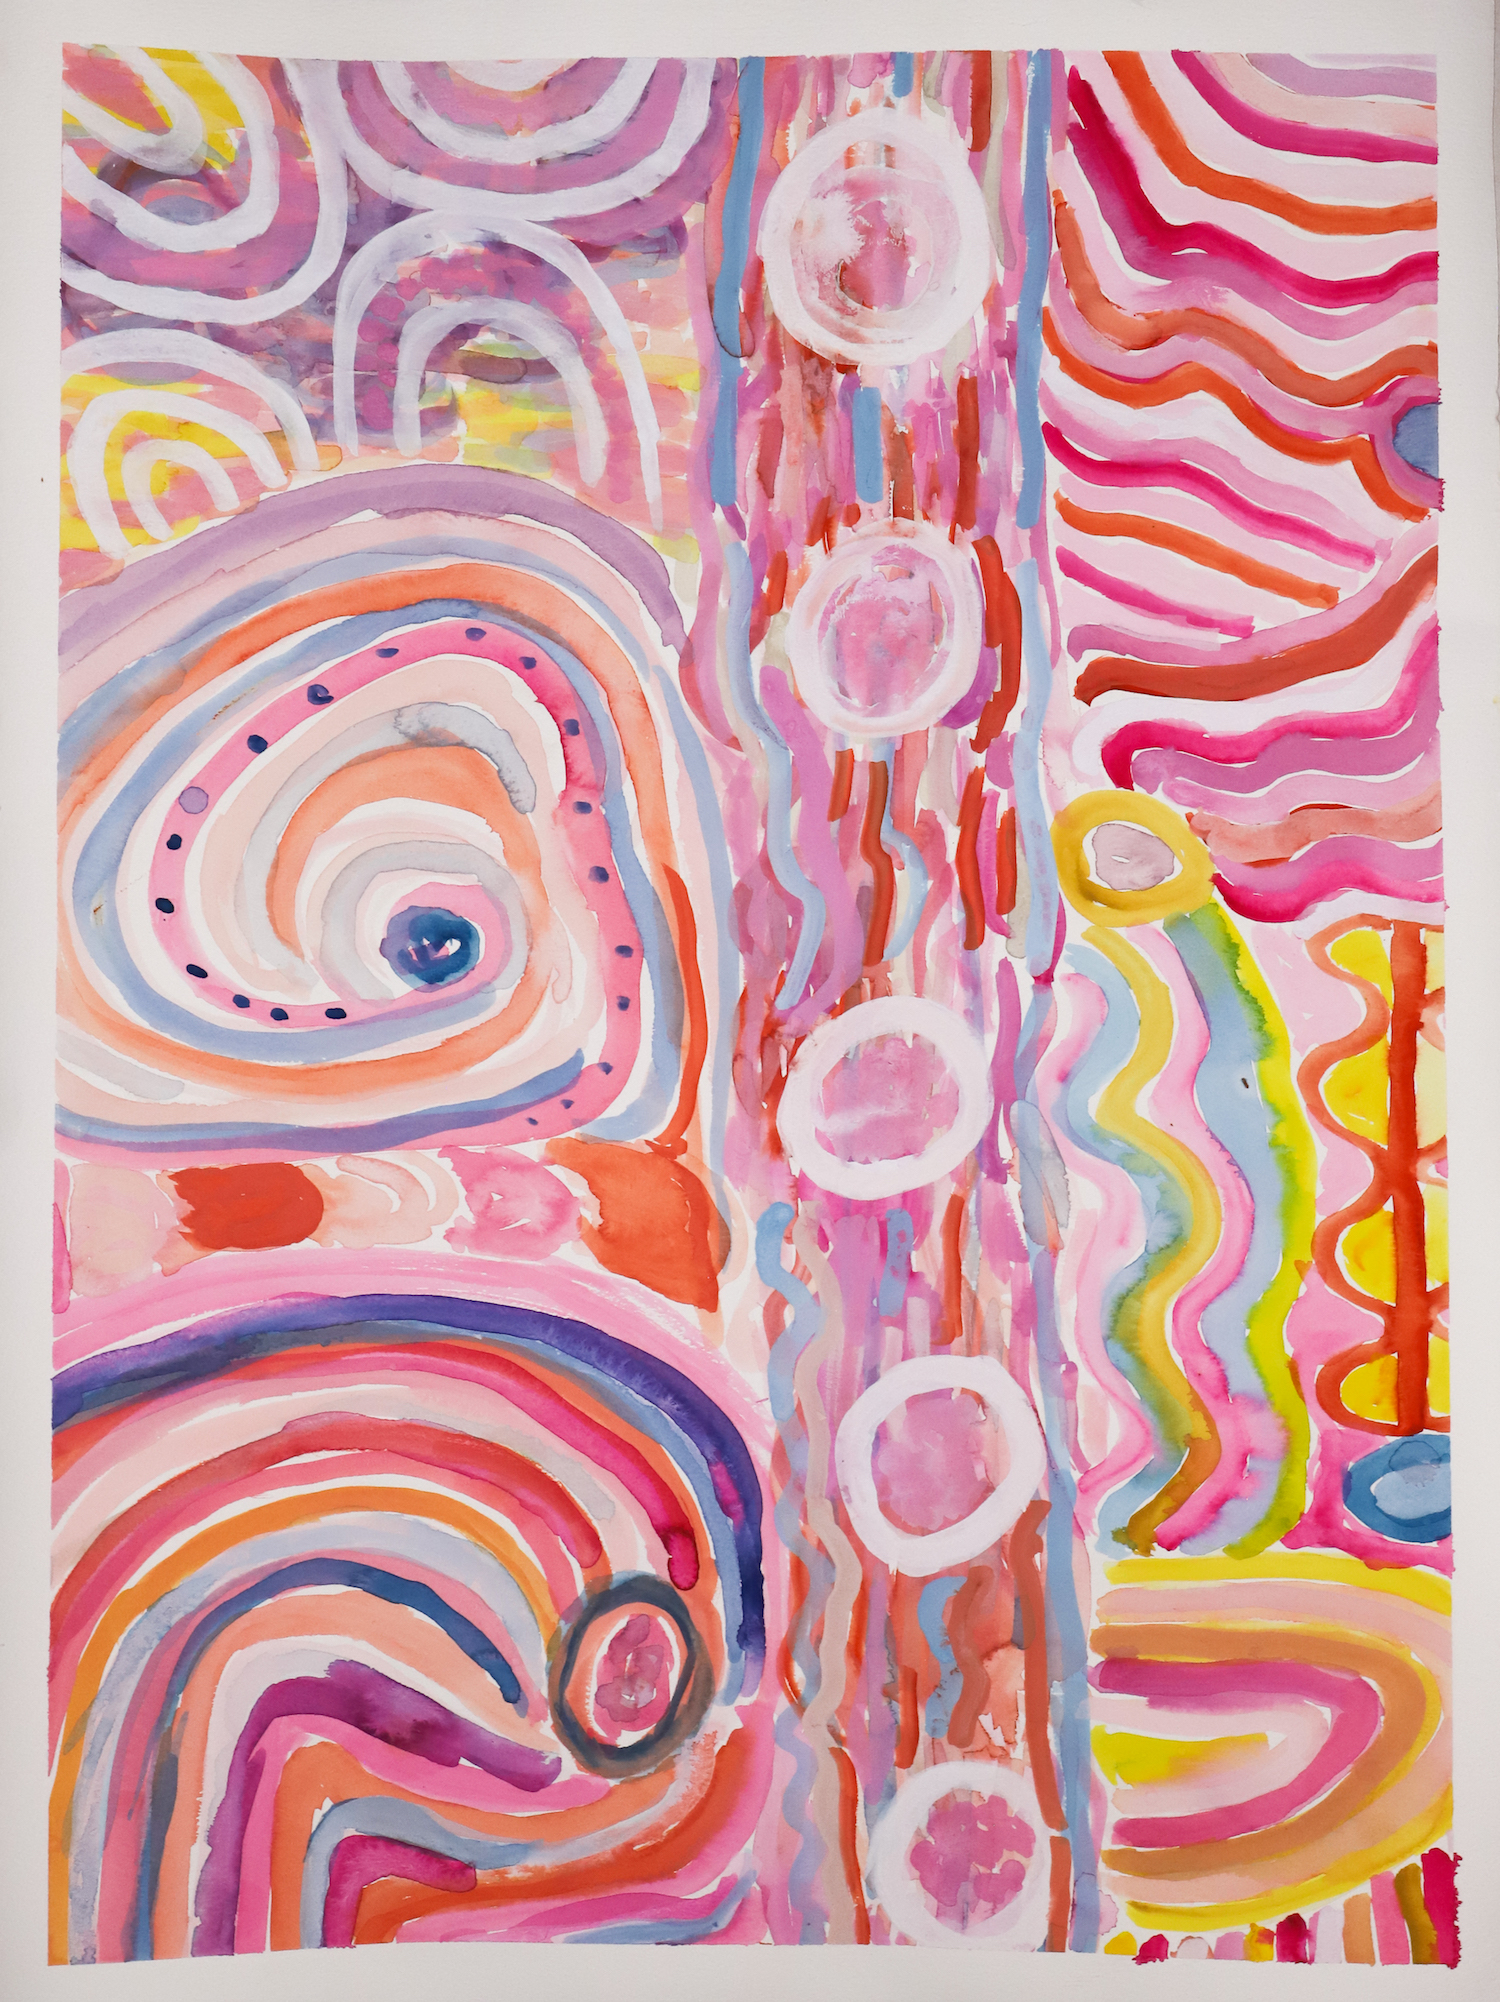 Marie Mudgedell's Untitled artwork.